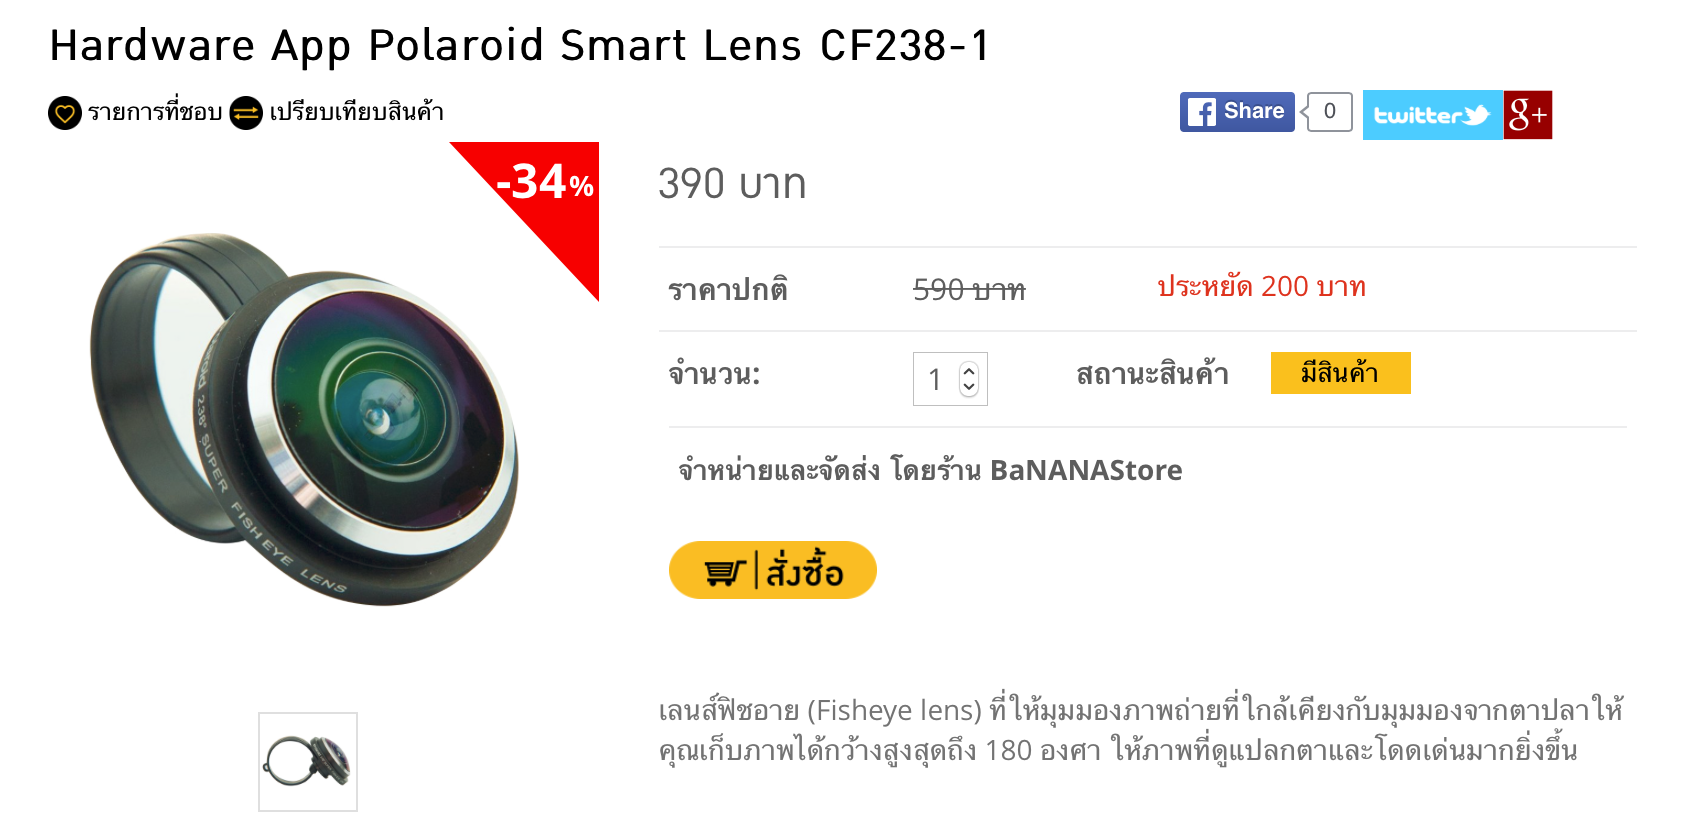 Polaroid-Smart-Lens-BananaStore-Promotion-000007